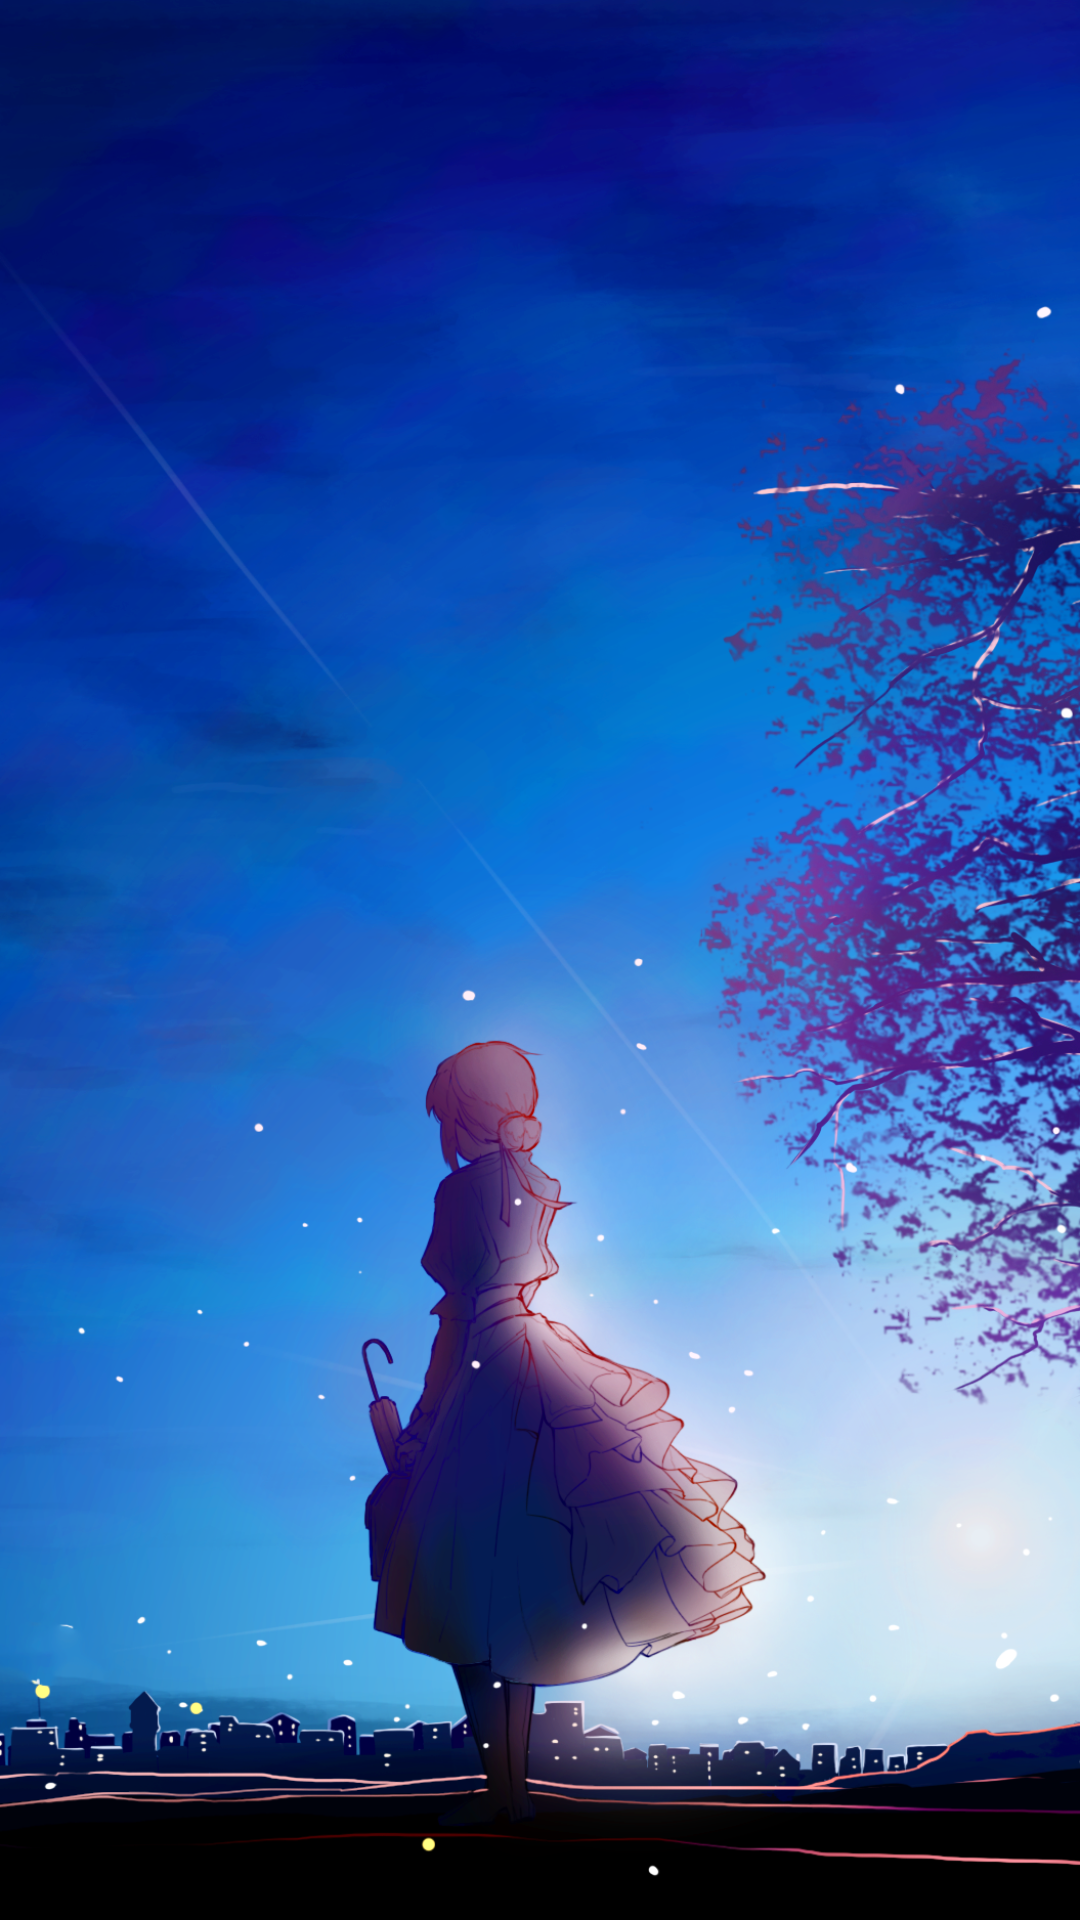 Download This Wallpaper Anime Violet Evergarden 1080x1920 For All Your Phones And Tablet Violet Evergarden Wallpaper Violet Evergreen Violet Evergarden Anime